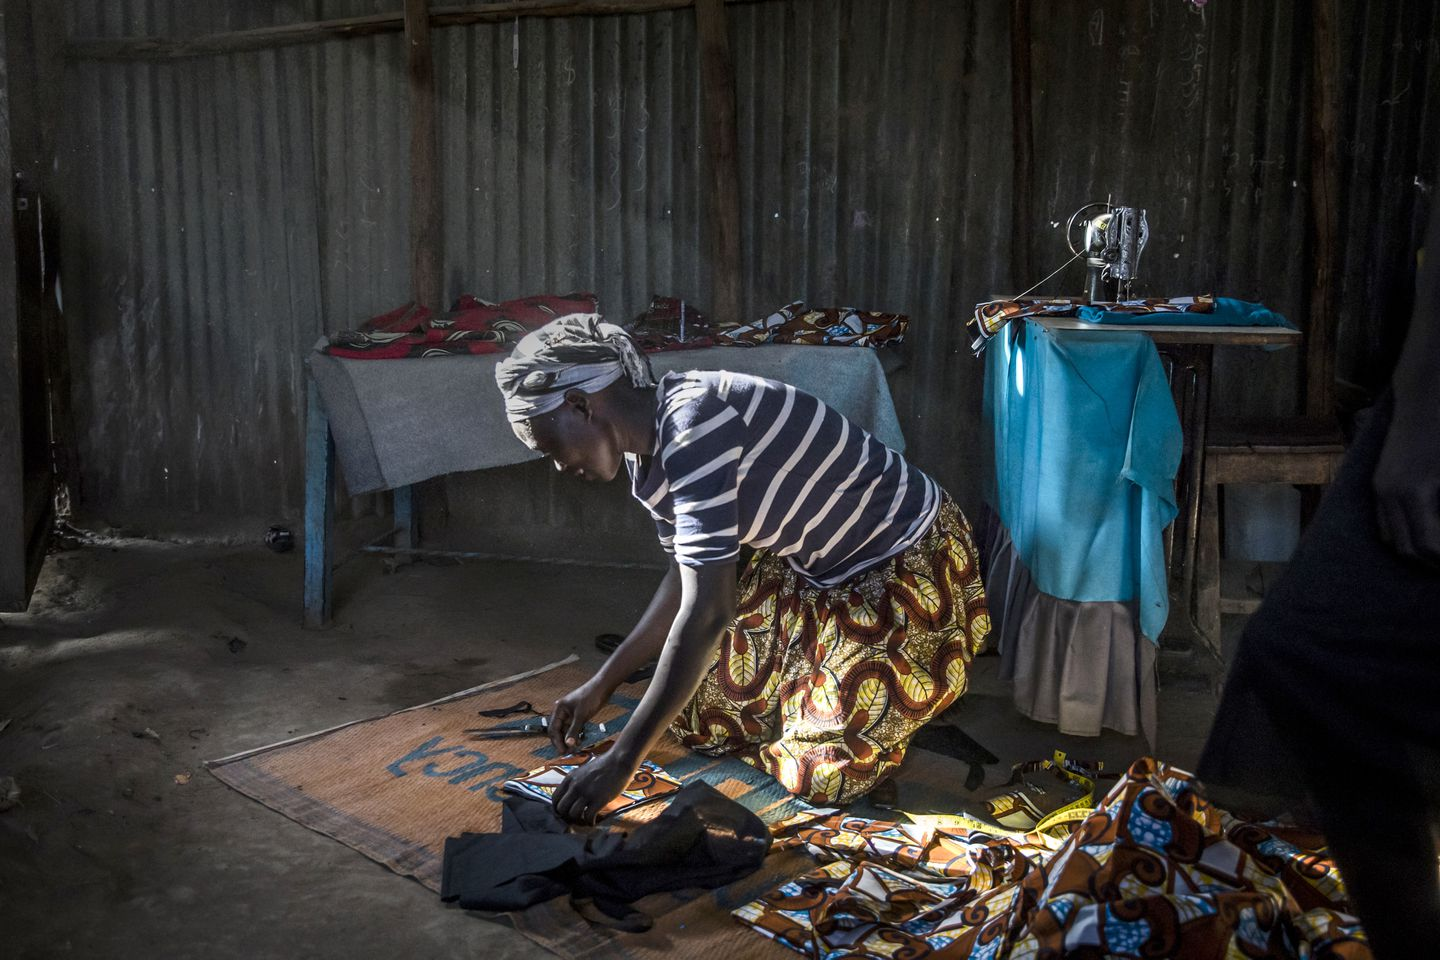 Achayo Loum, a student of Southern New Hampshire University's online degree program for refugees, worked on a dress in the UNHCR refugee camp in Kakuma.